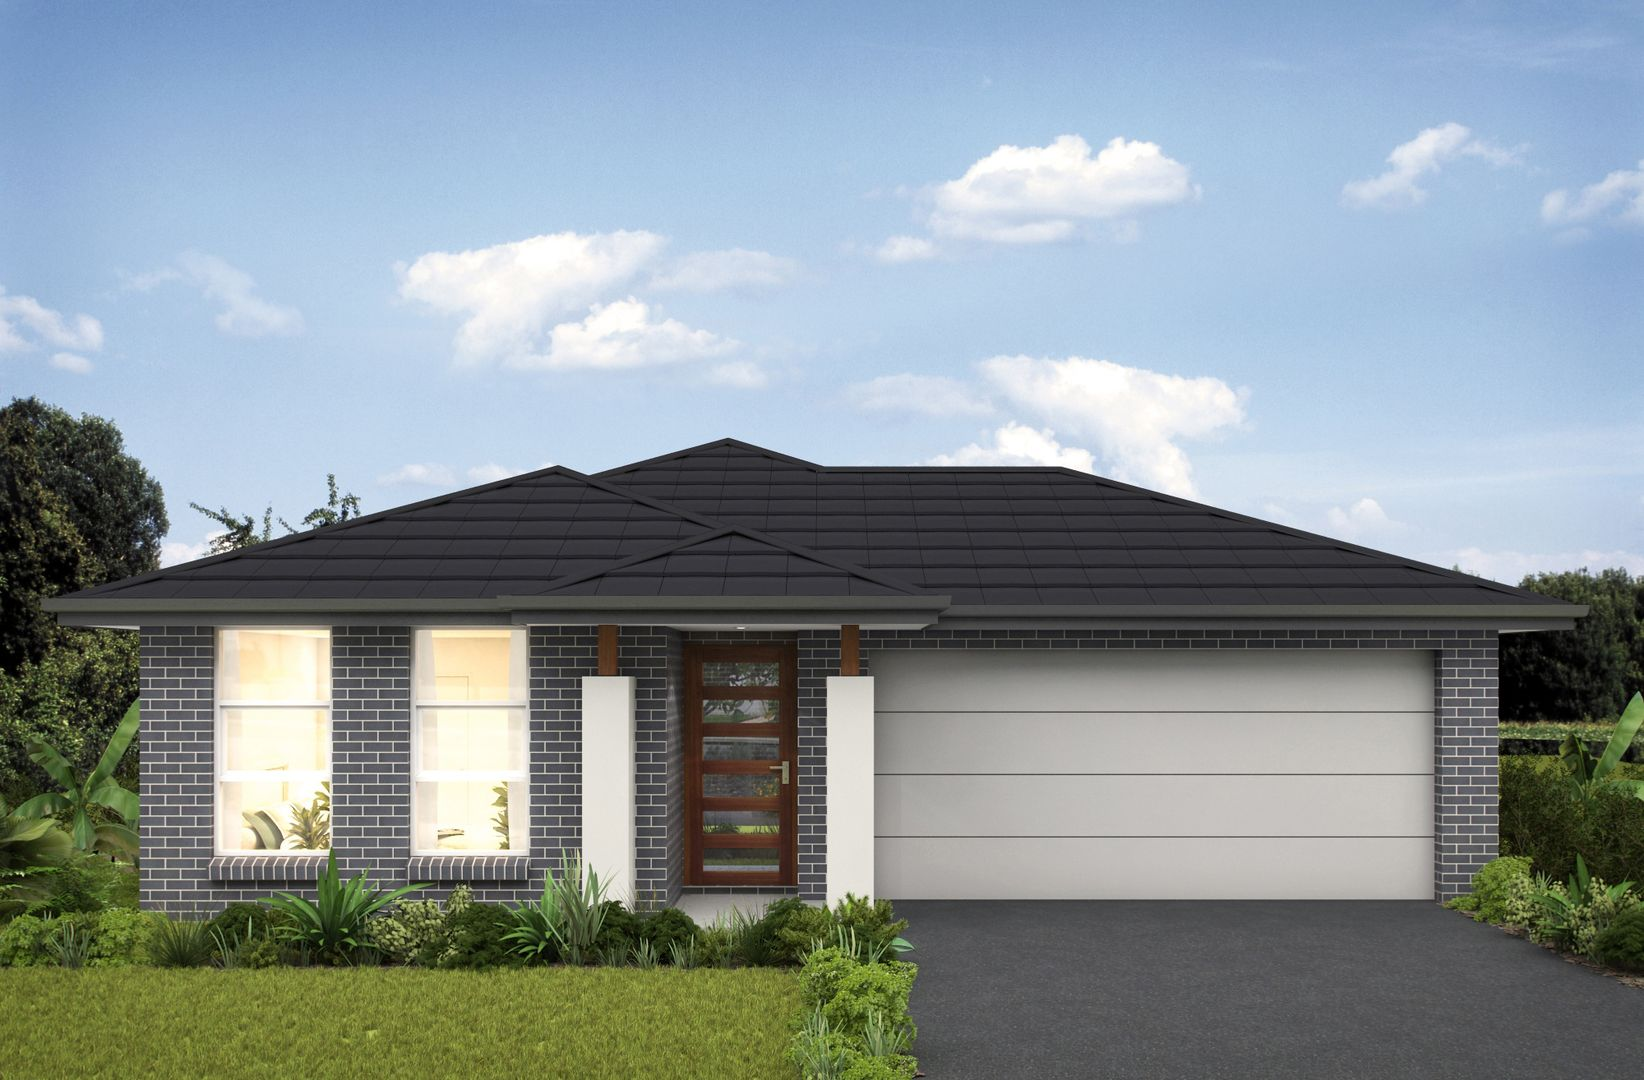 Lot 5283 Proposed road, Marsden Park NSW 2765, Image 0